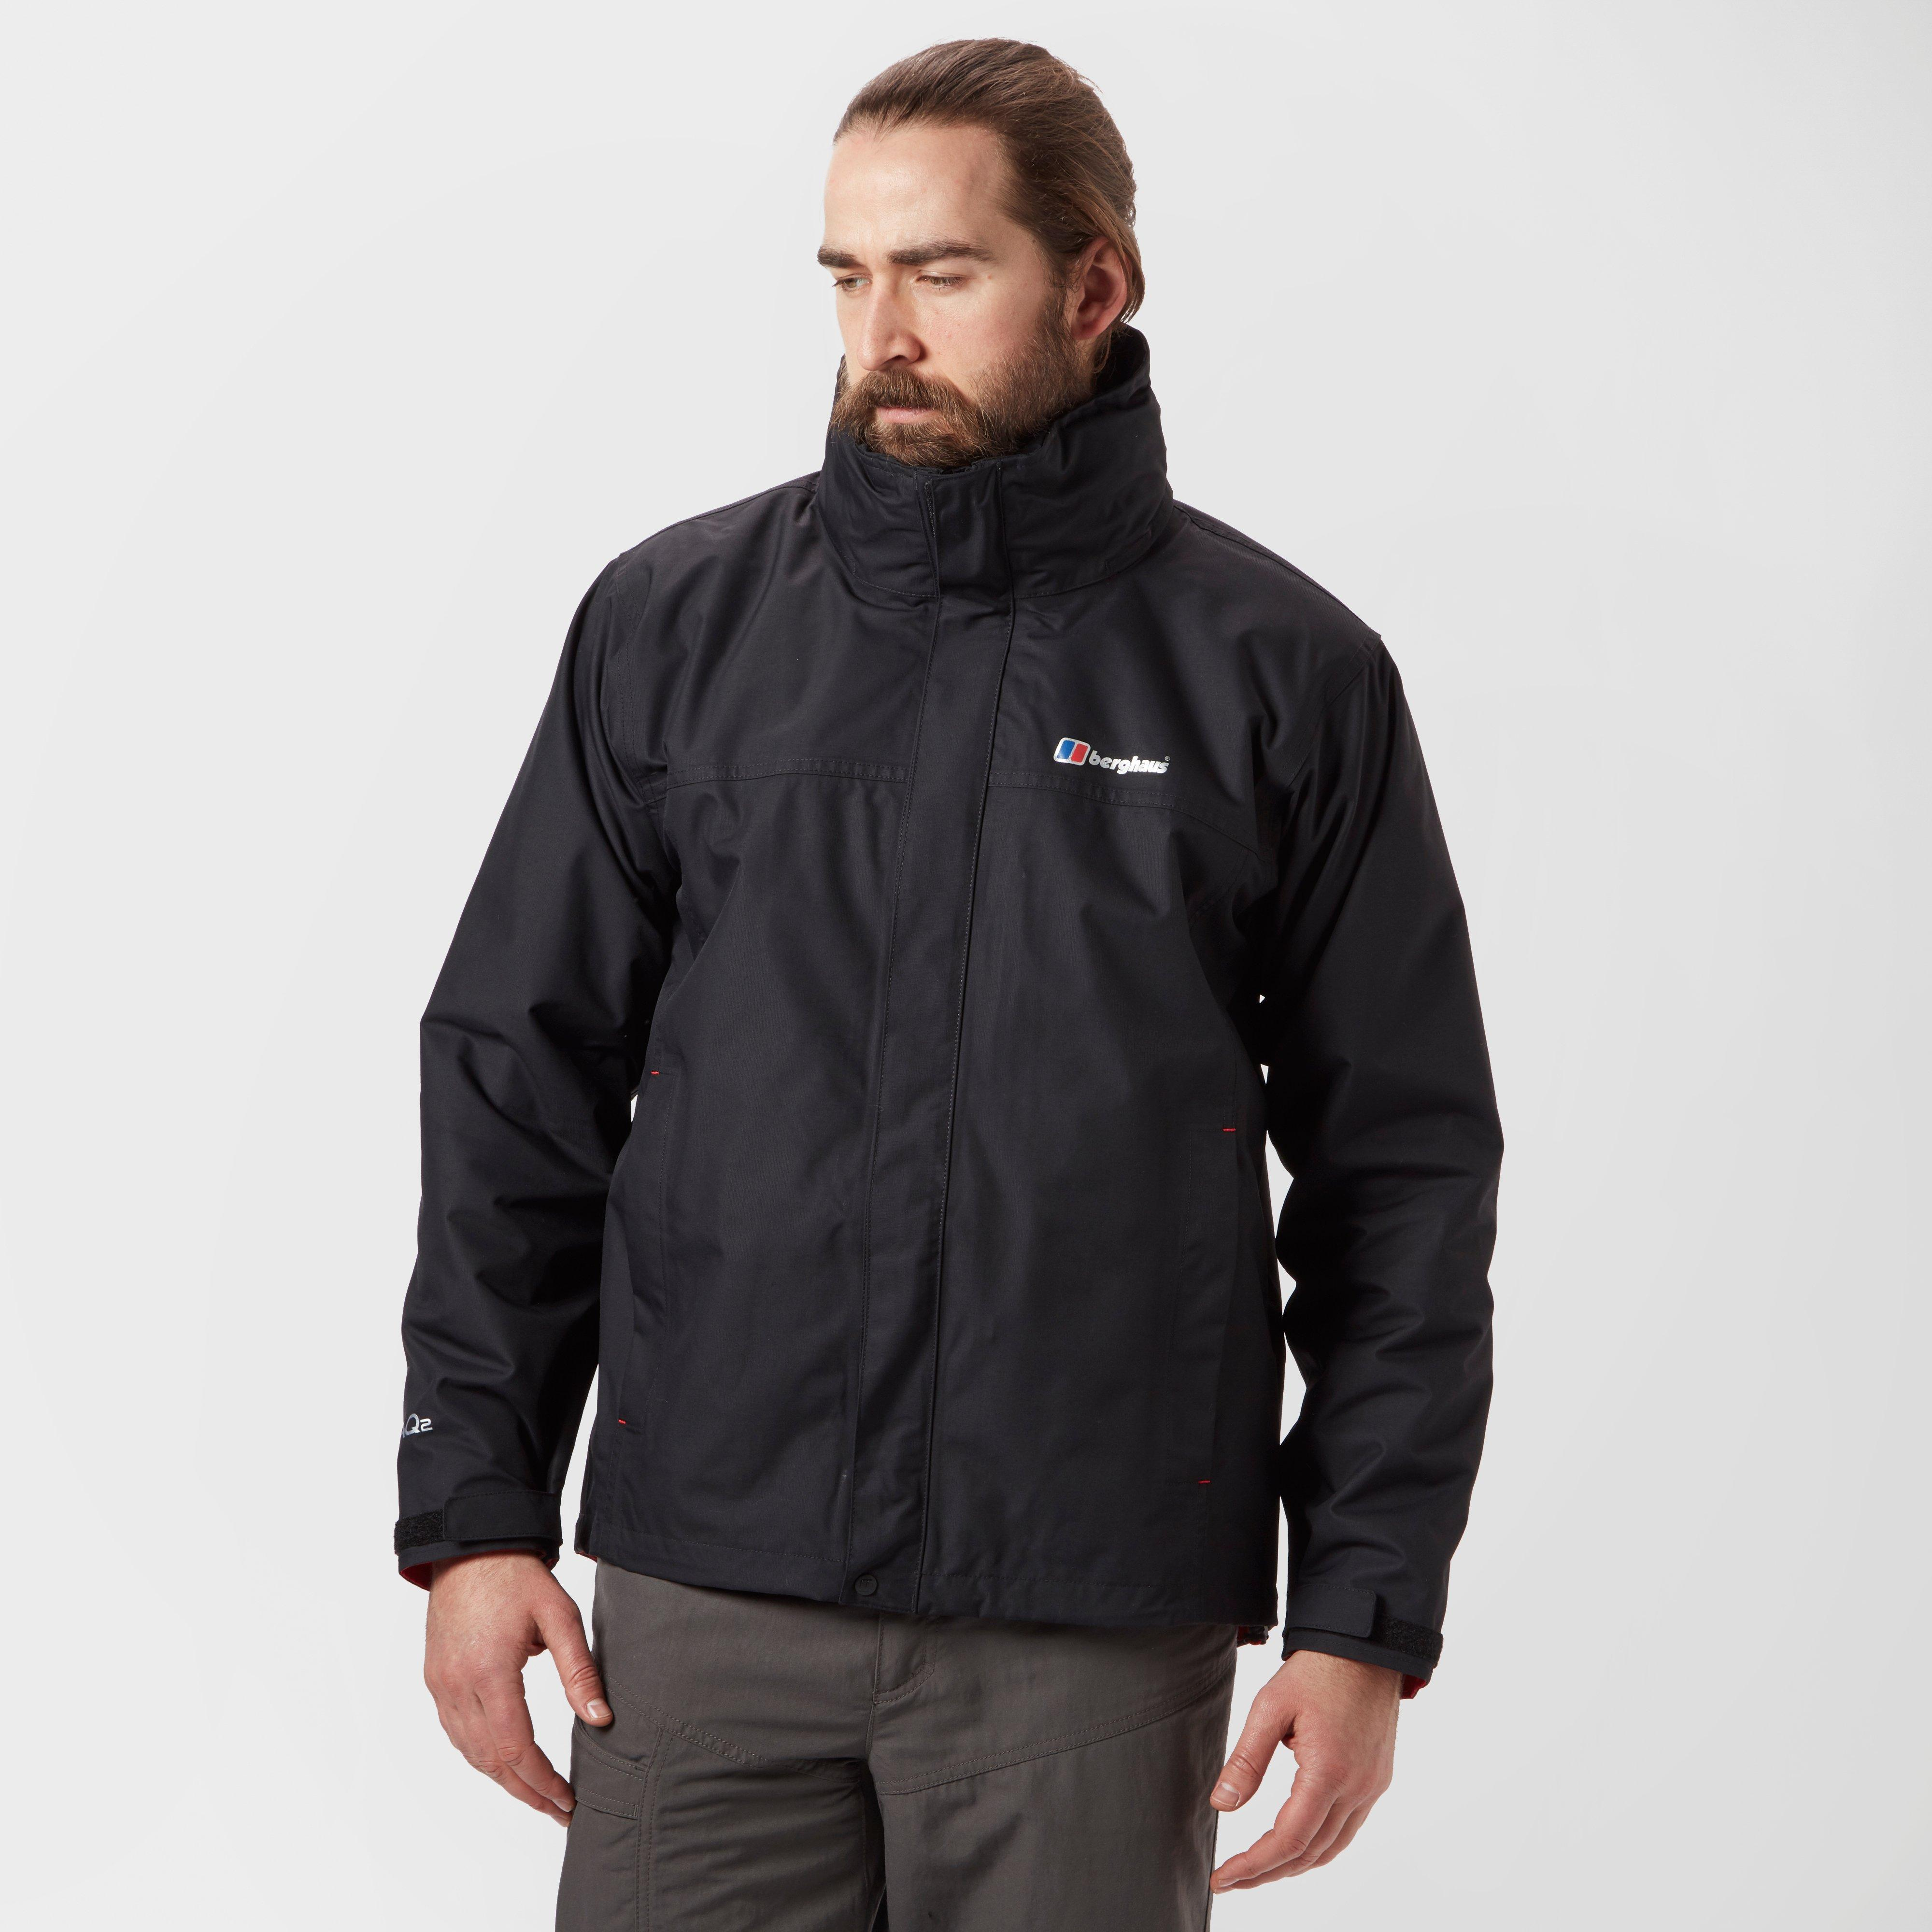 Men's Waterproof Jackets & Rain Coats | Millets